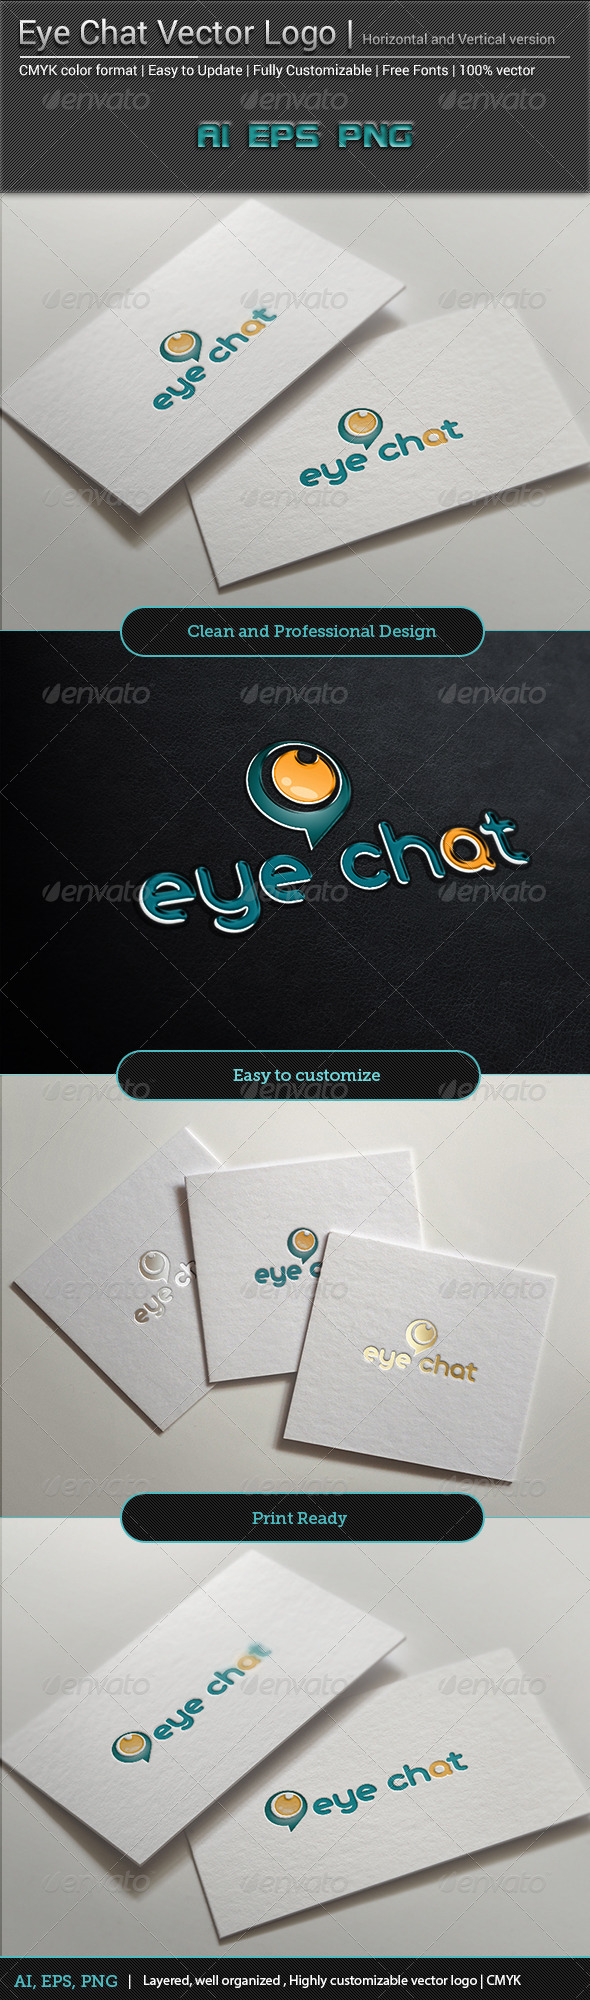 Eye Chat Vector Logo  - Vector Abstract